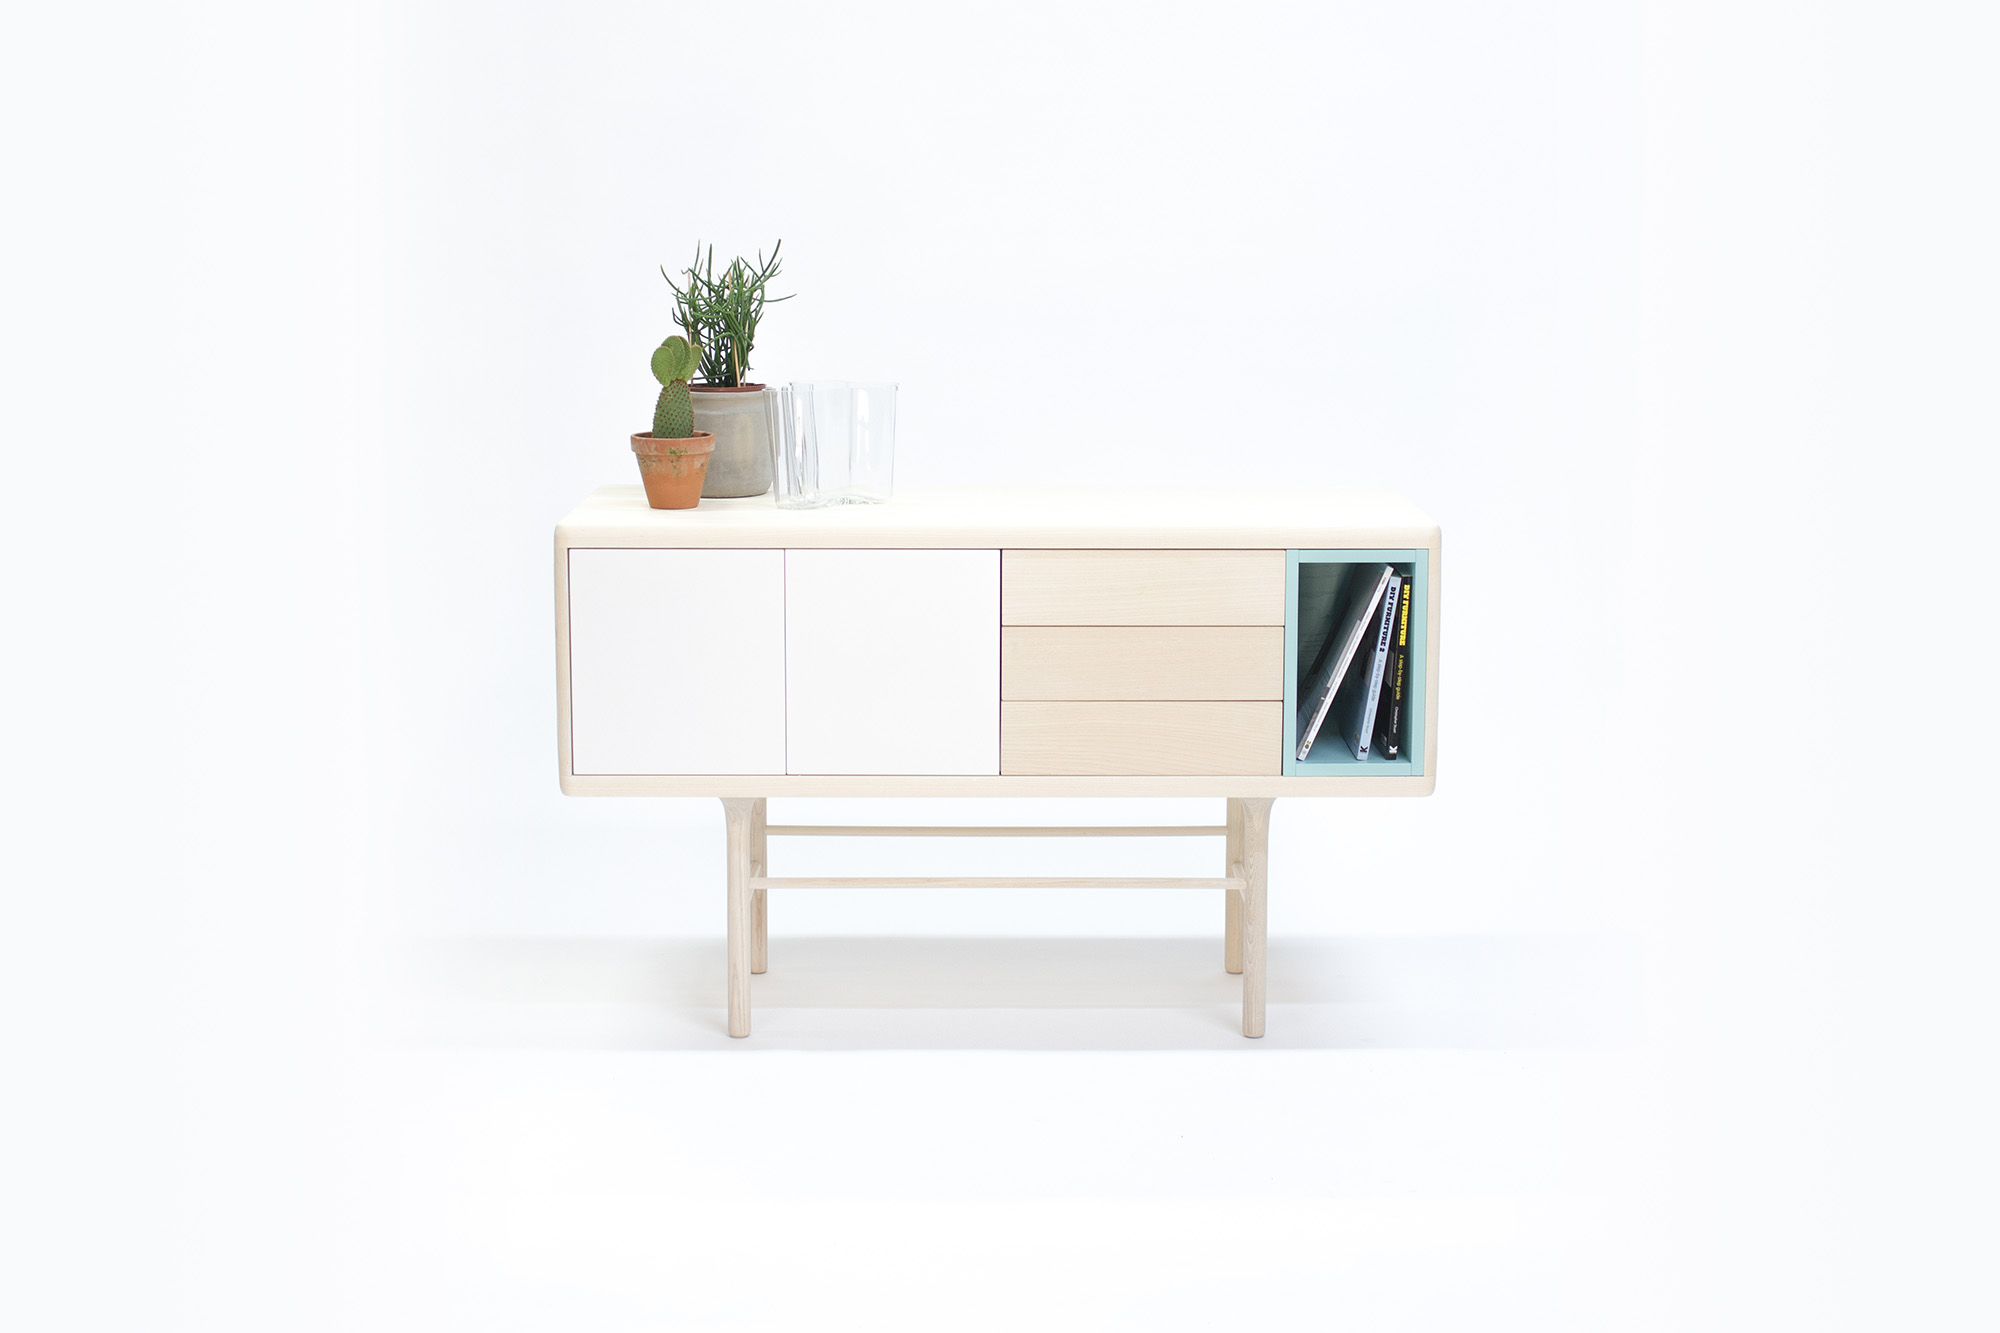 Minimal scandinavian furniture by designer carlos jim nez for Furniture blueprint maker